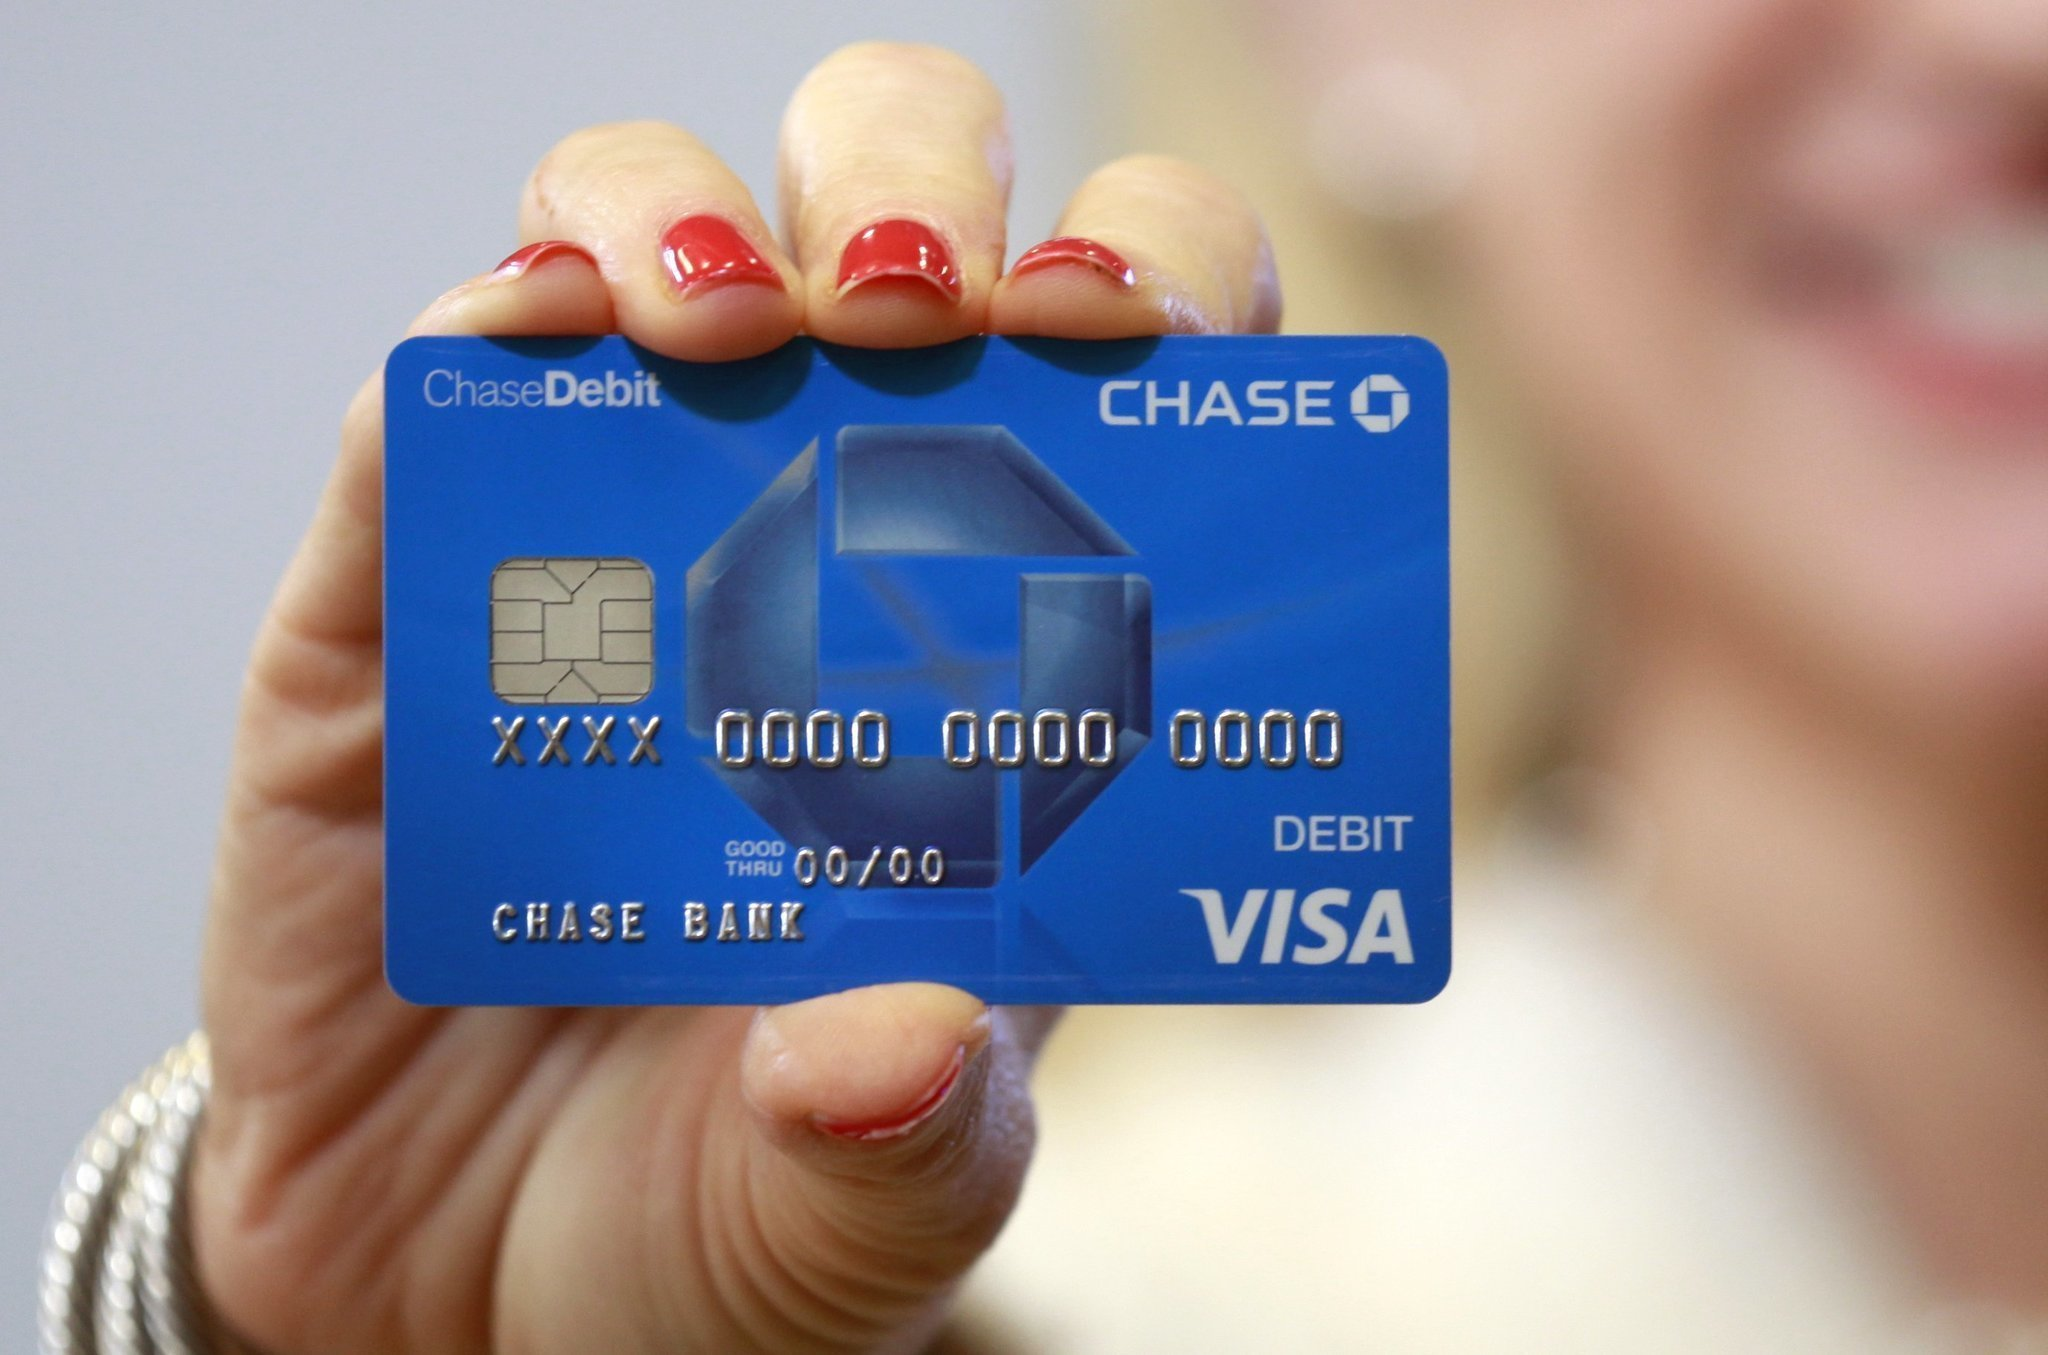 How to Verify Chase Bank Credit Card Online